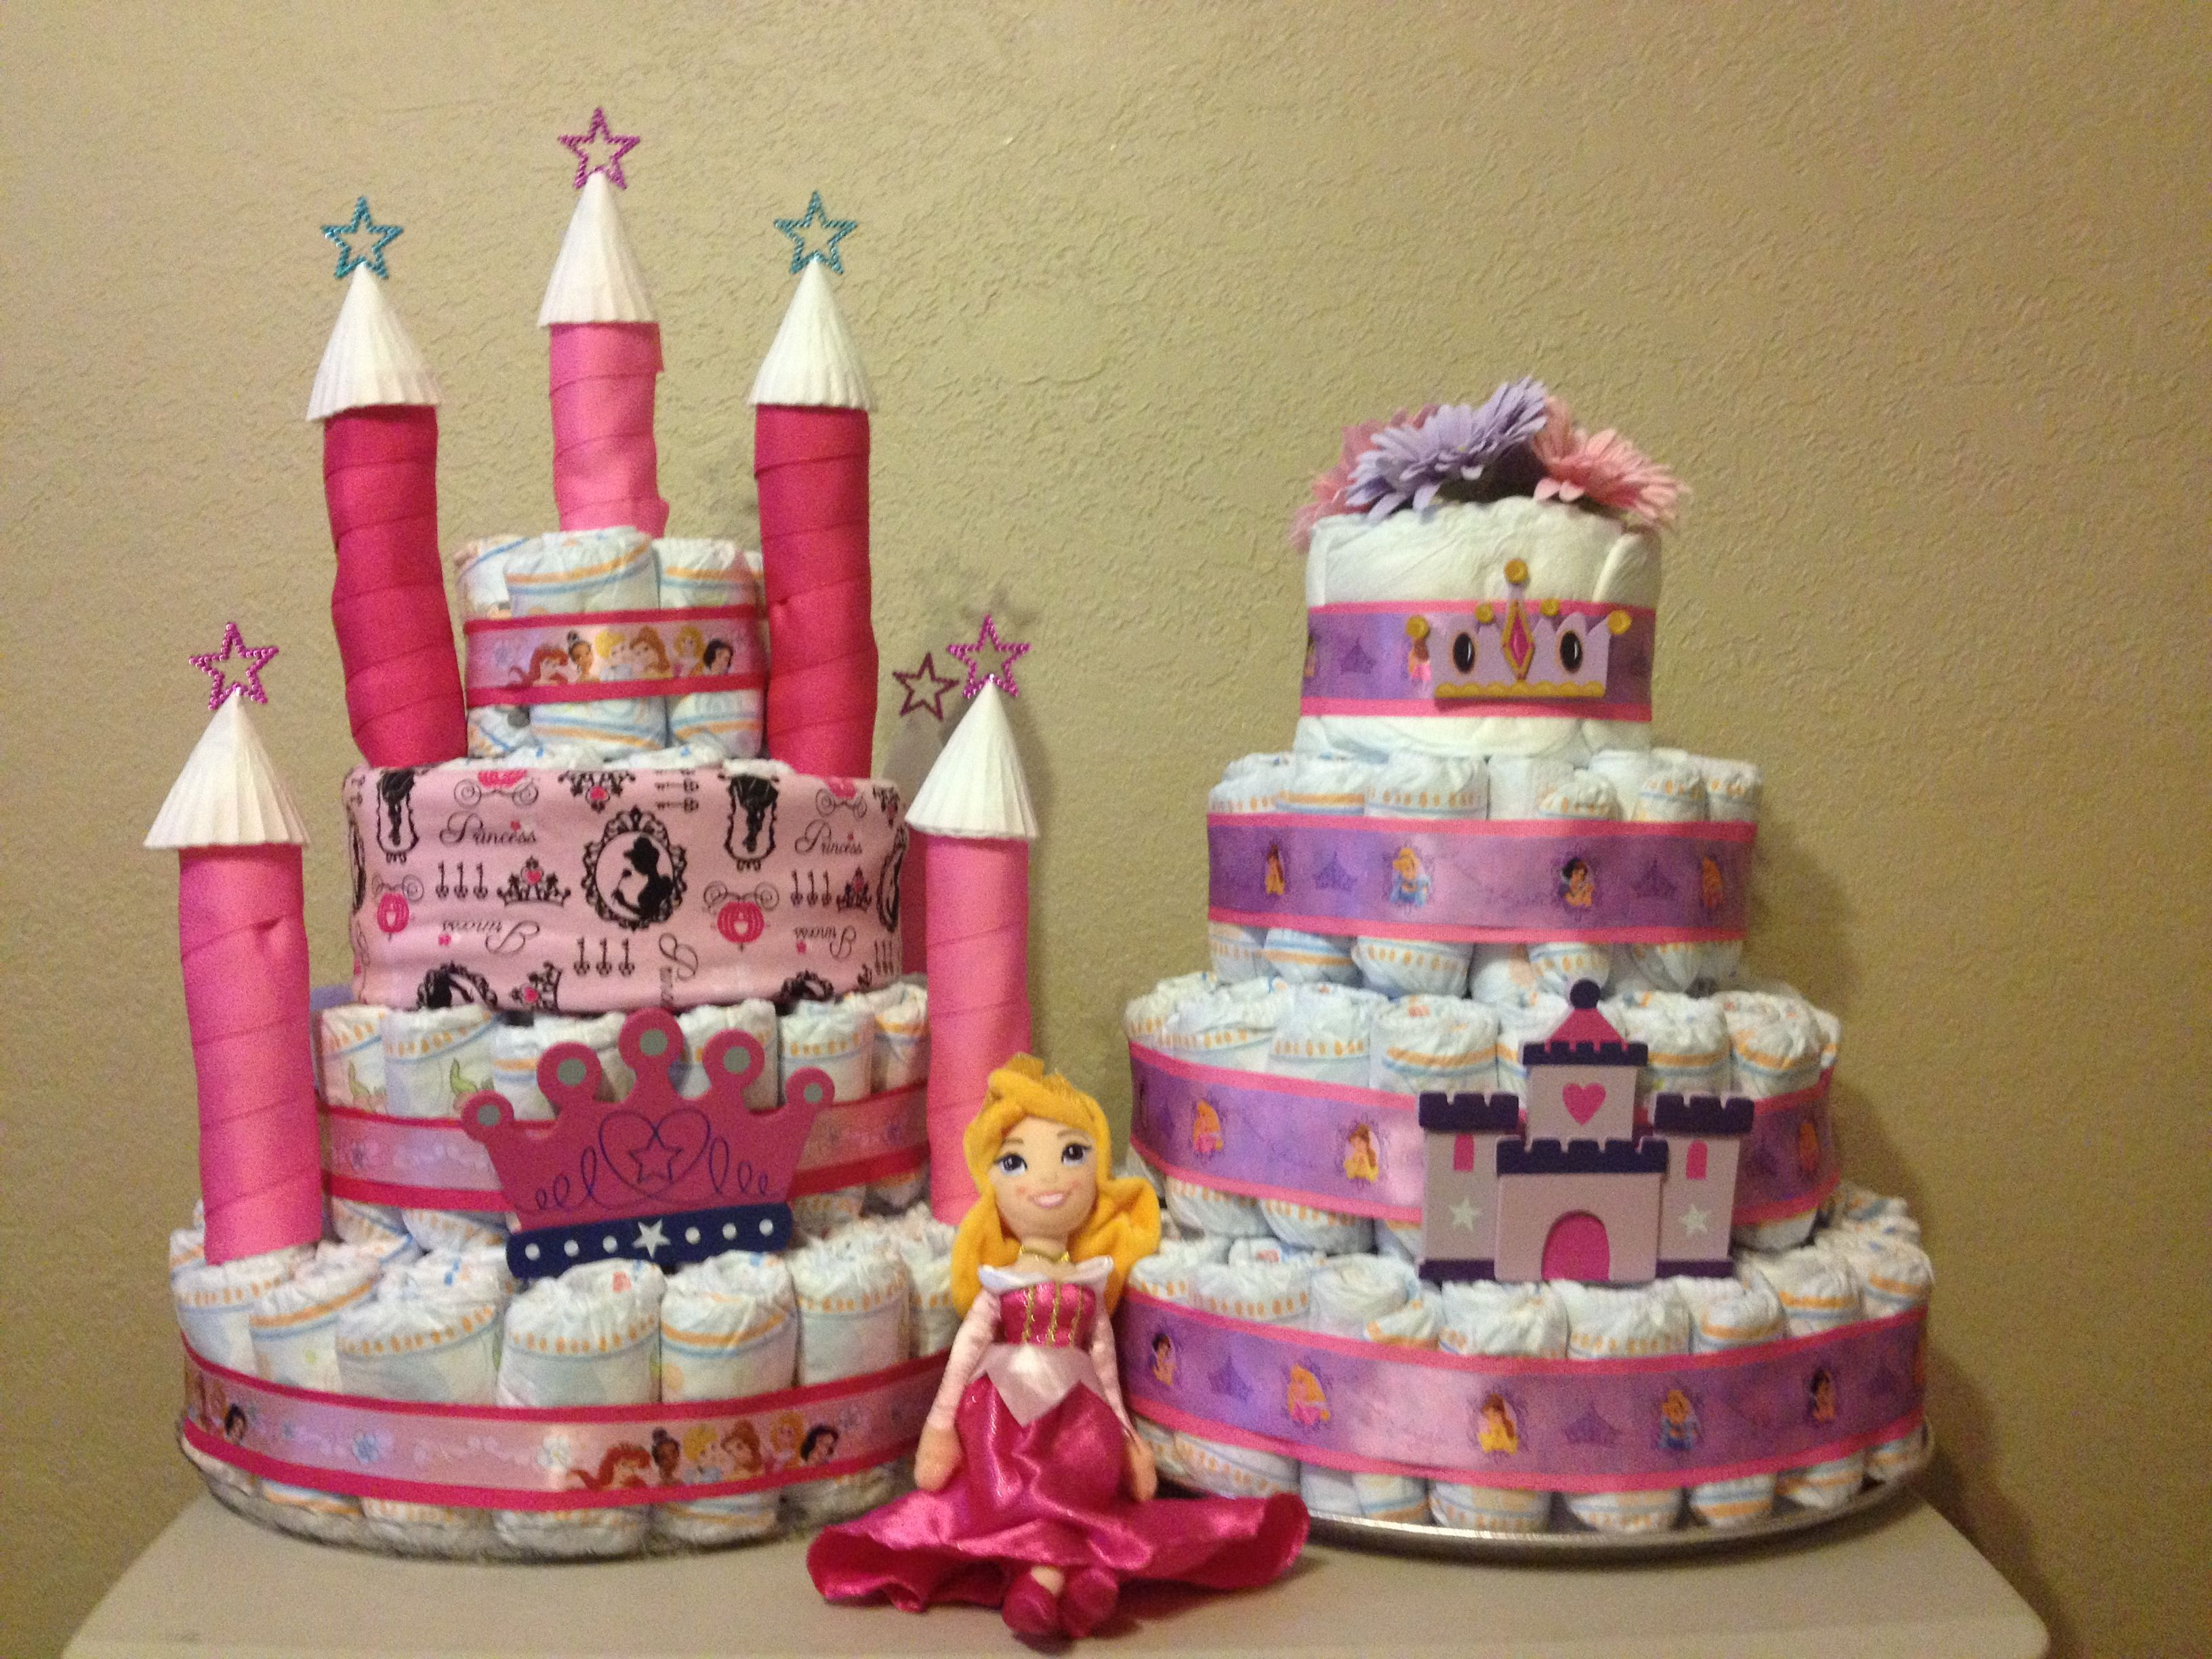 showers baby shower cakes shower ideas princess baby showers disney